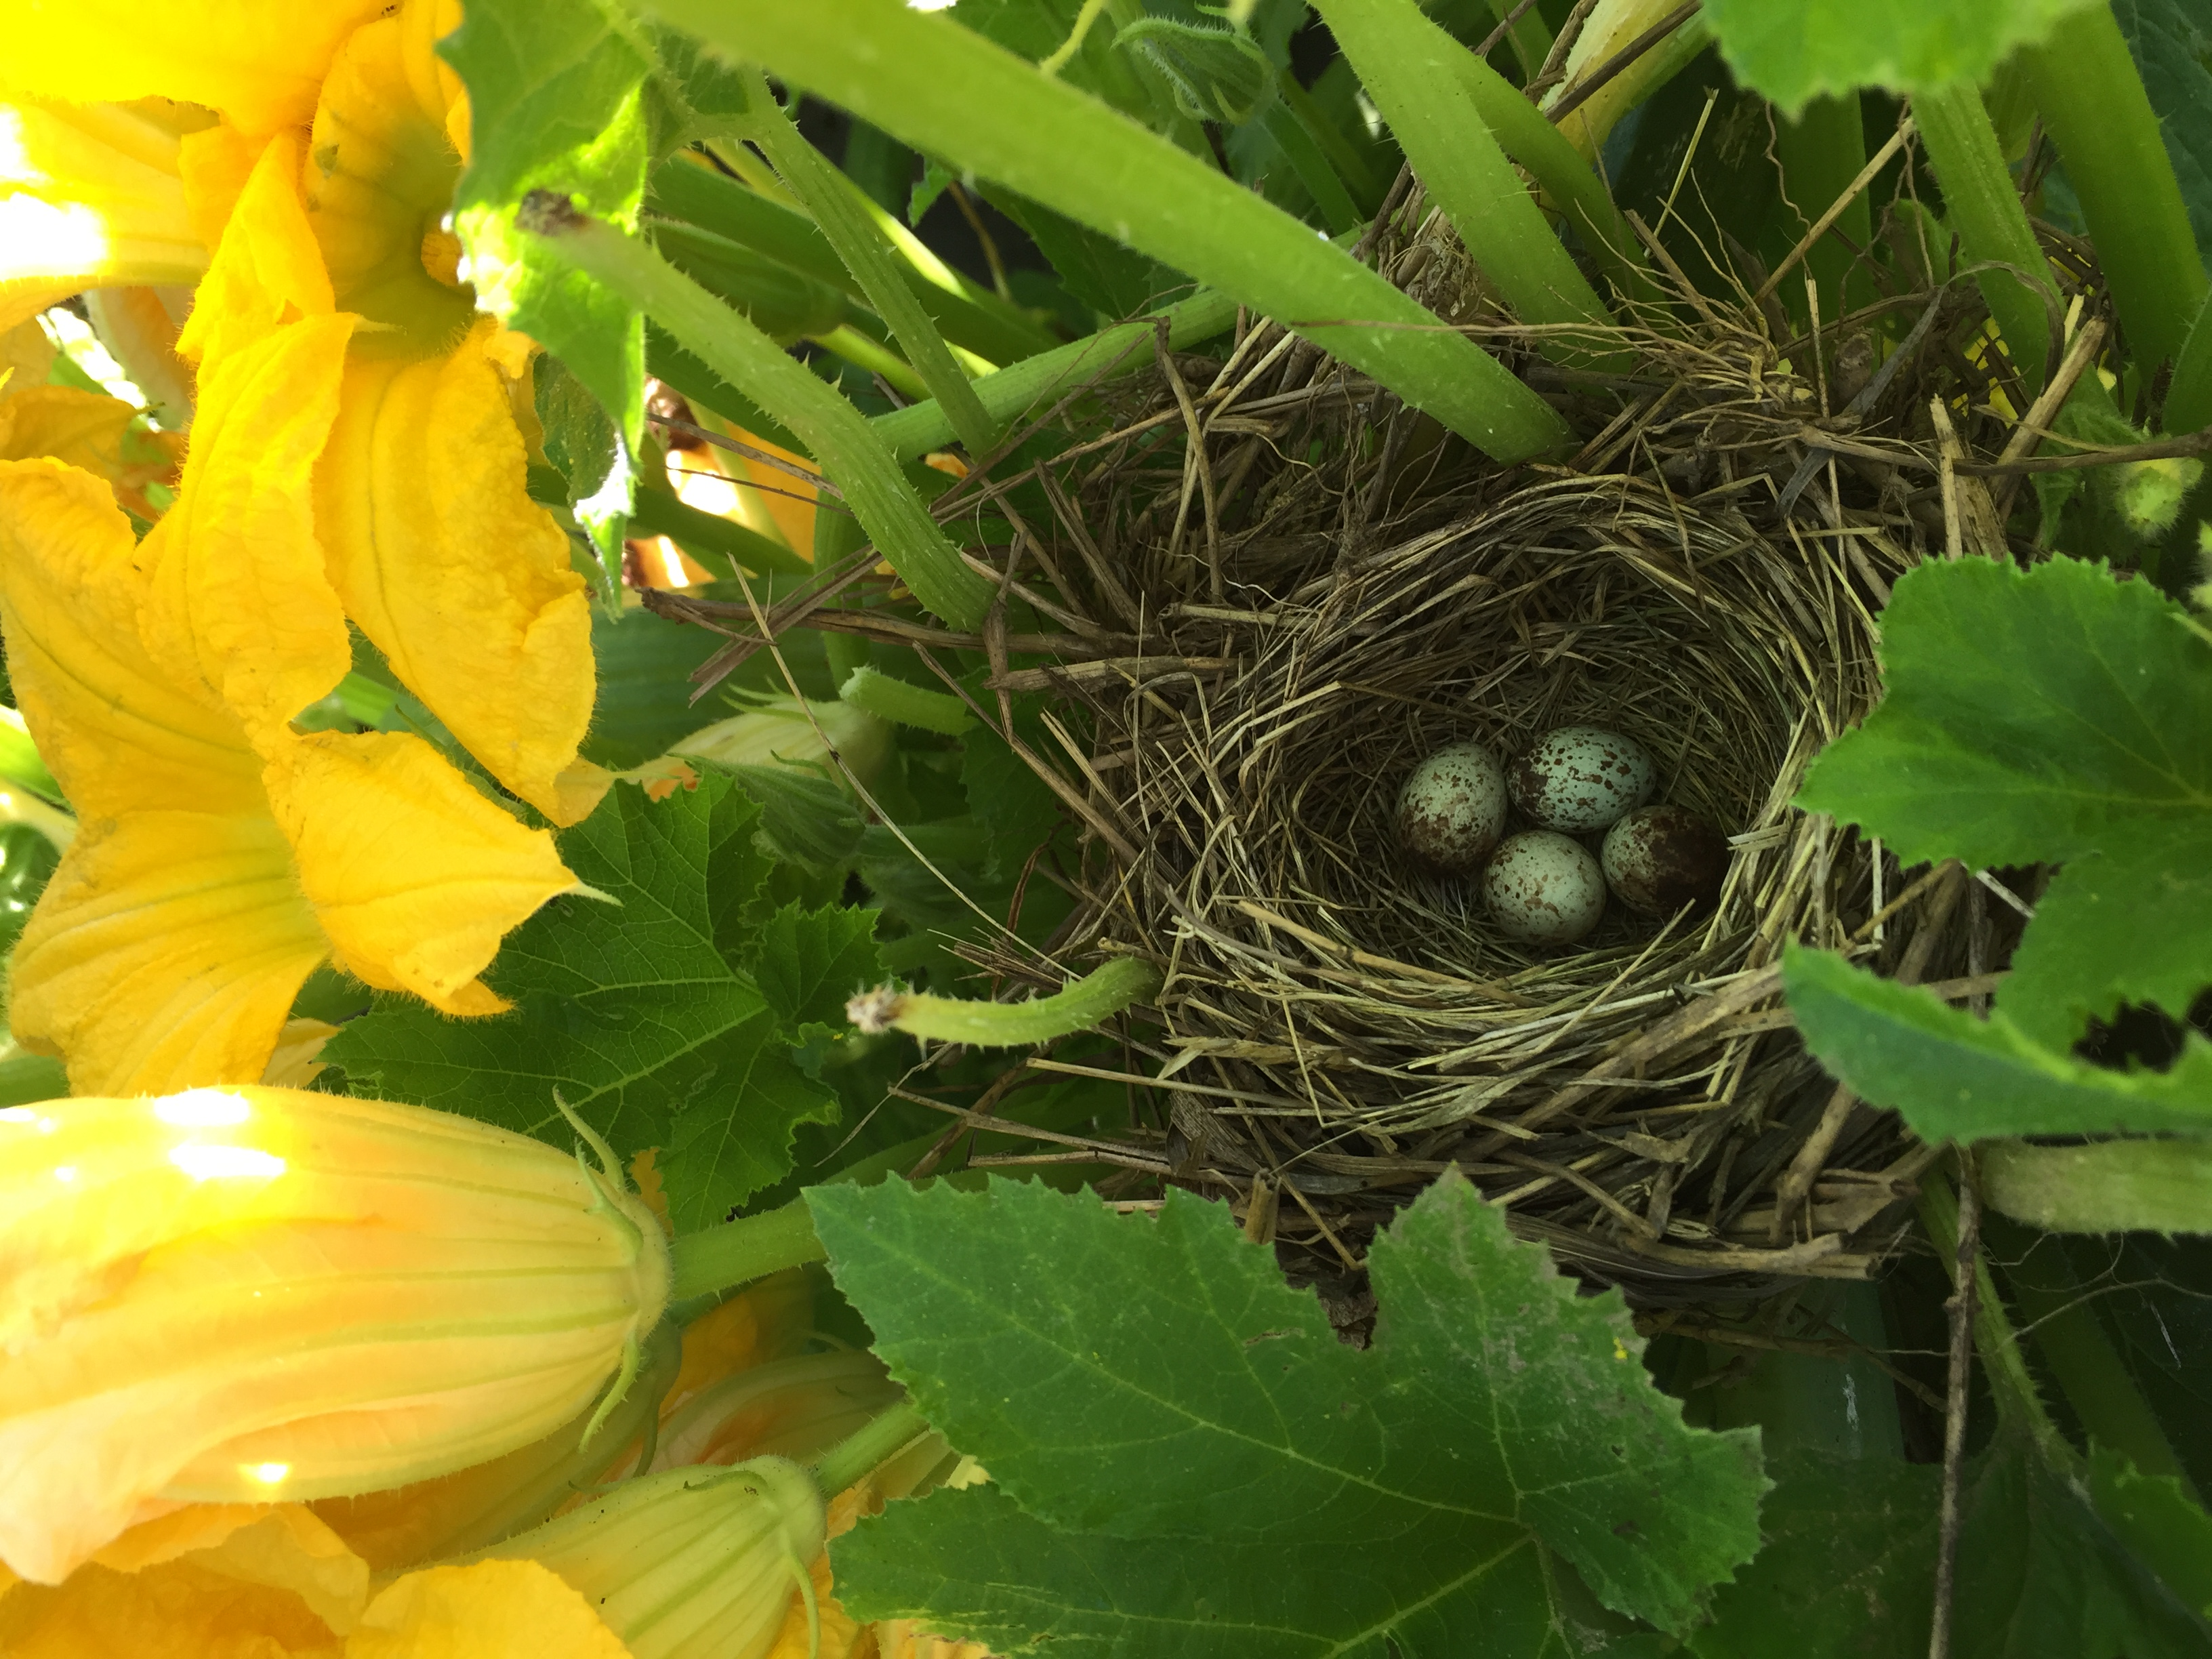 birds happily nesting in the squash